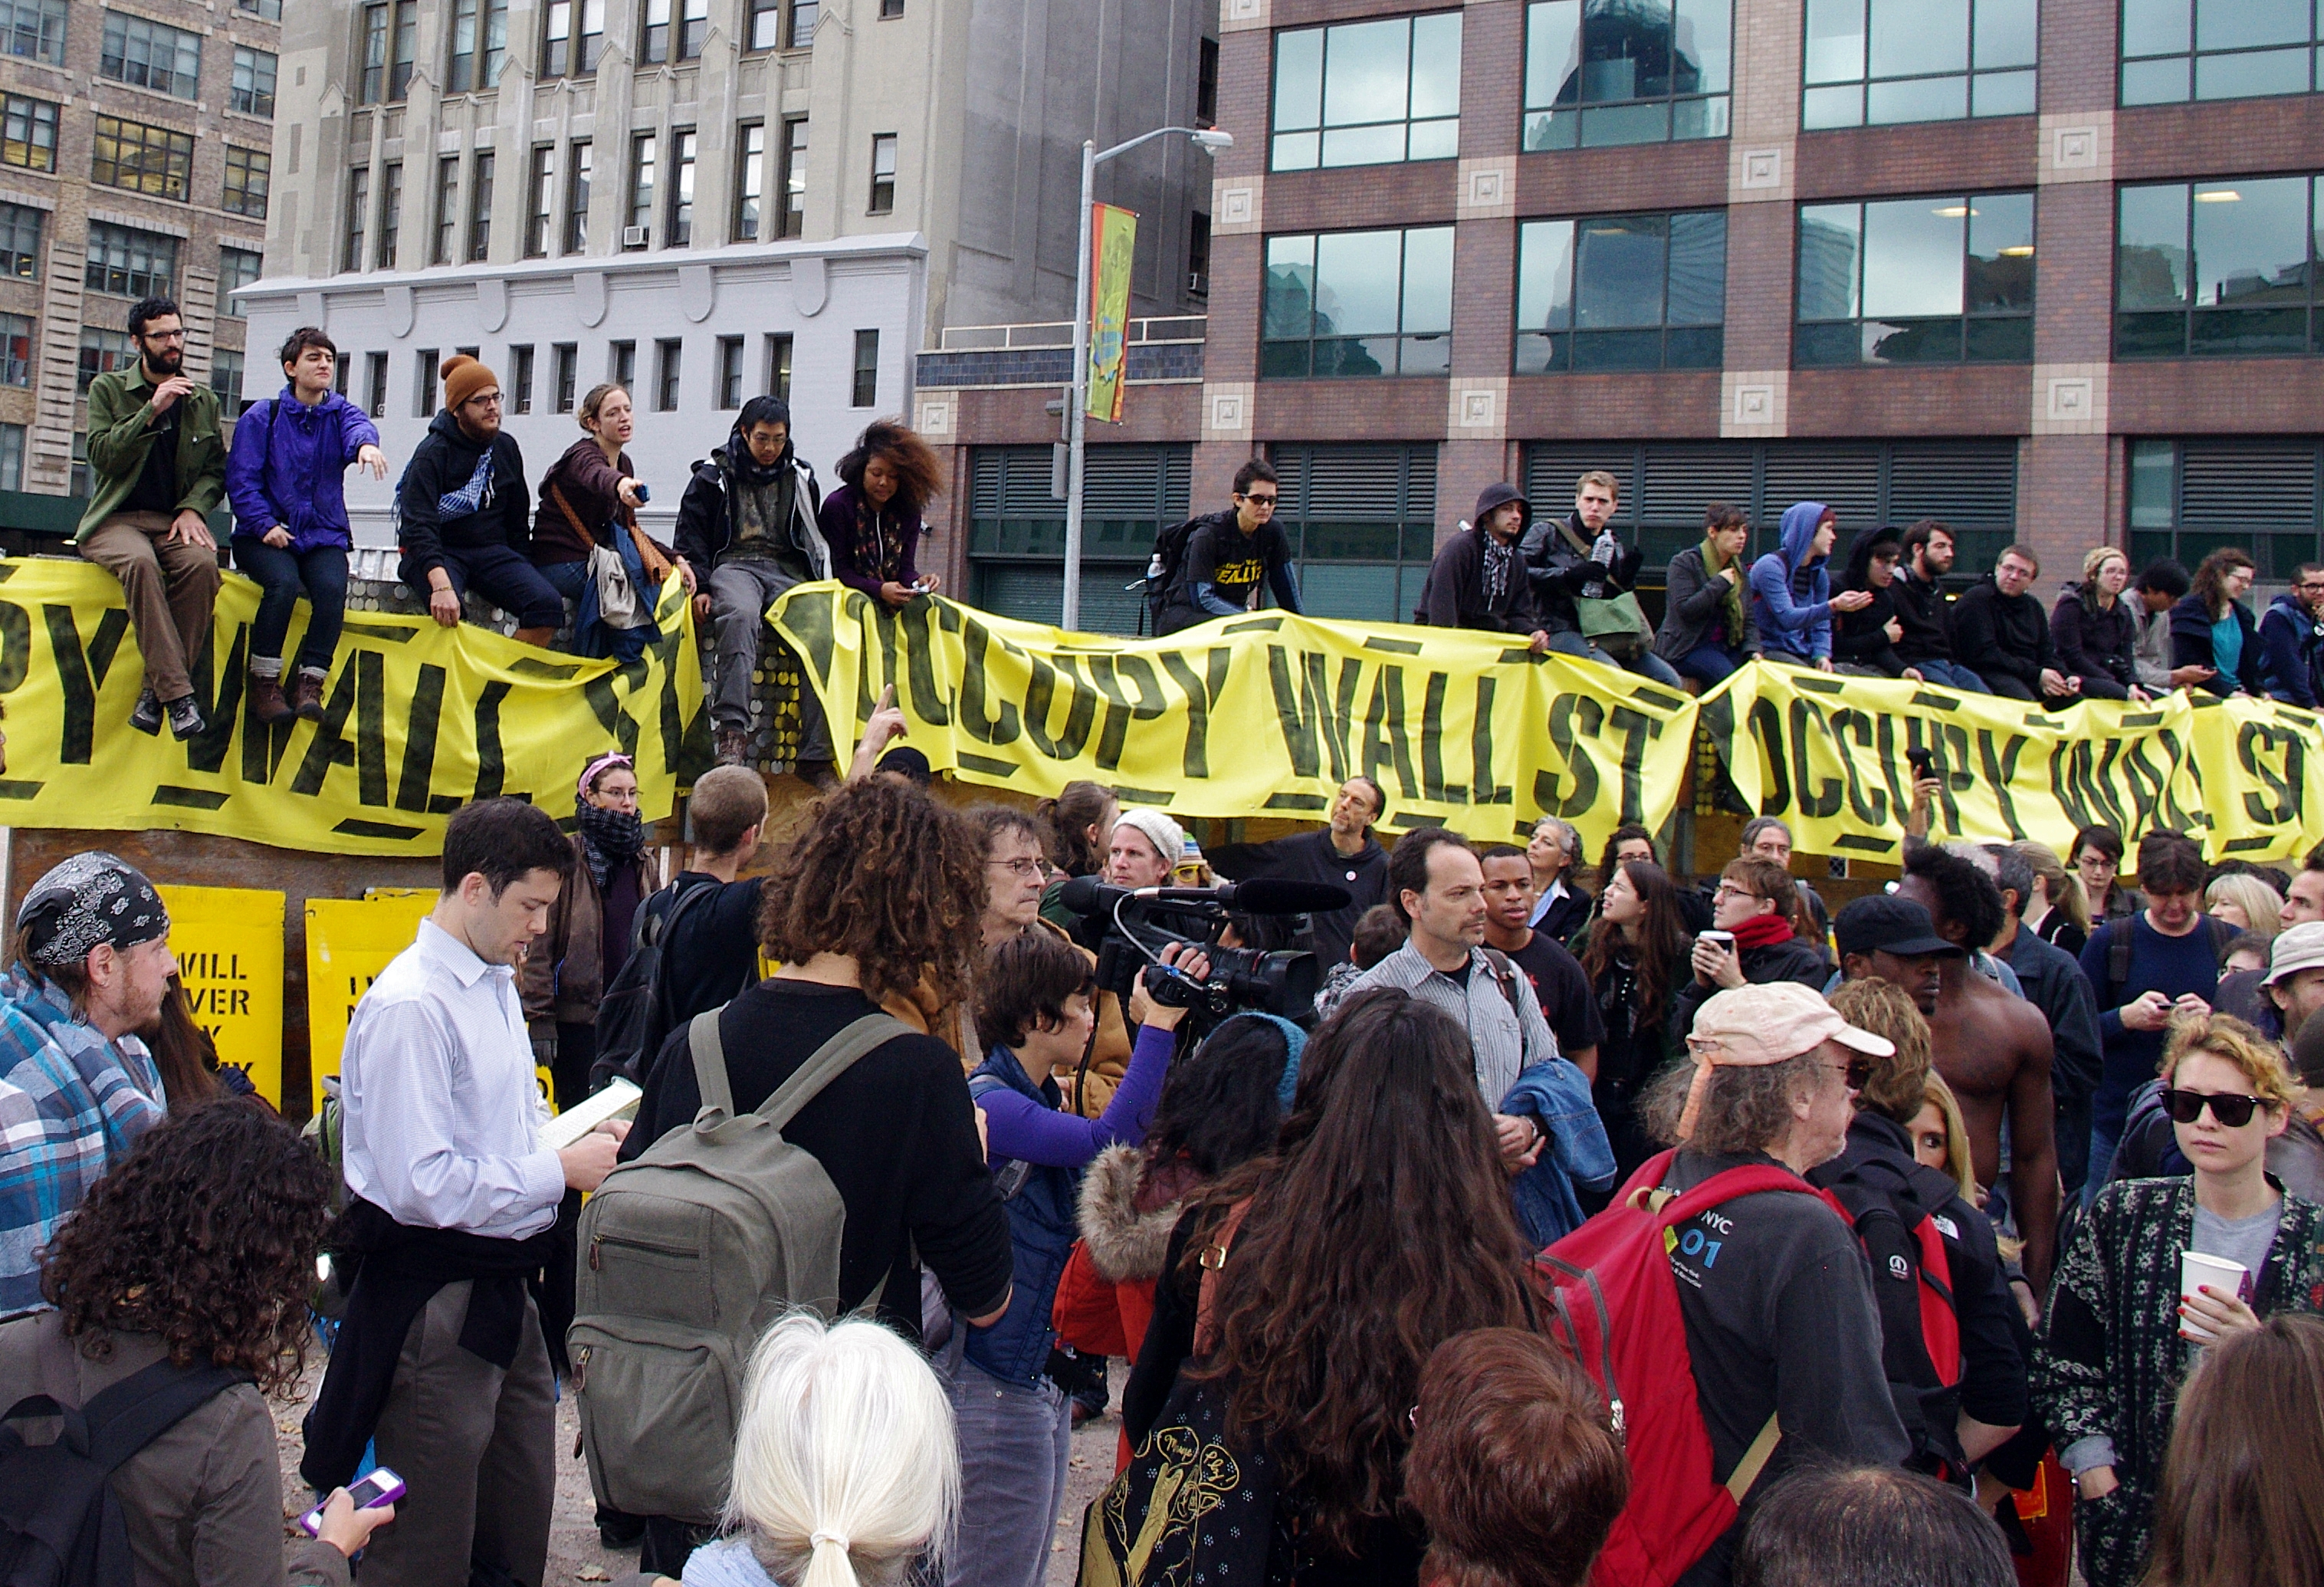 https://upload.wikimedia.org/wikipedia/commons/4/43/Day_60_Occupy_Wall_Street_November_15_2011_Shankbone_18.JPG